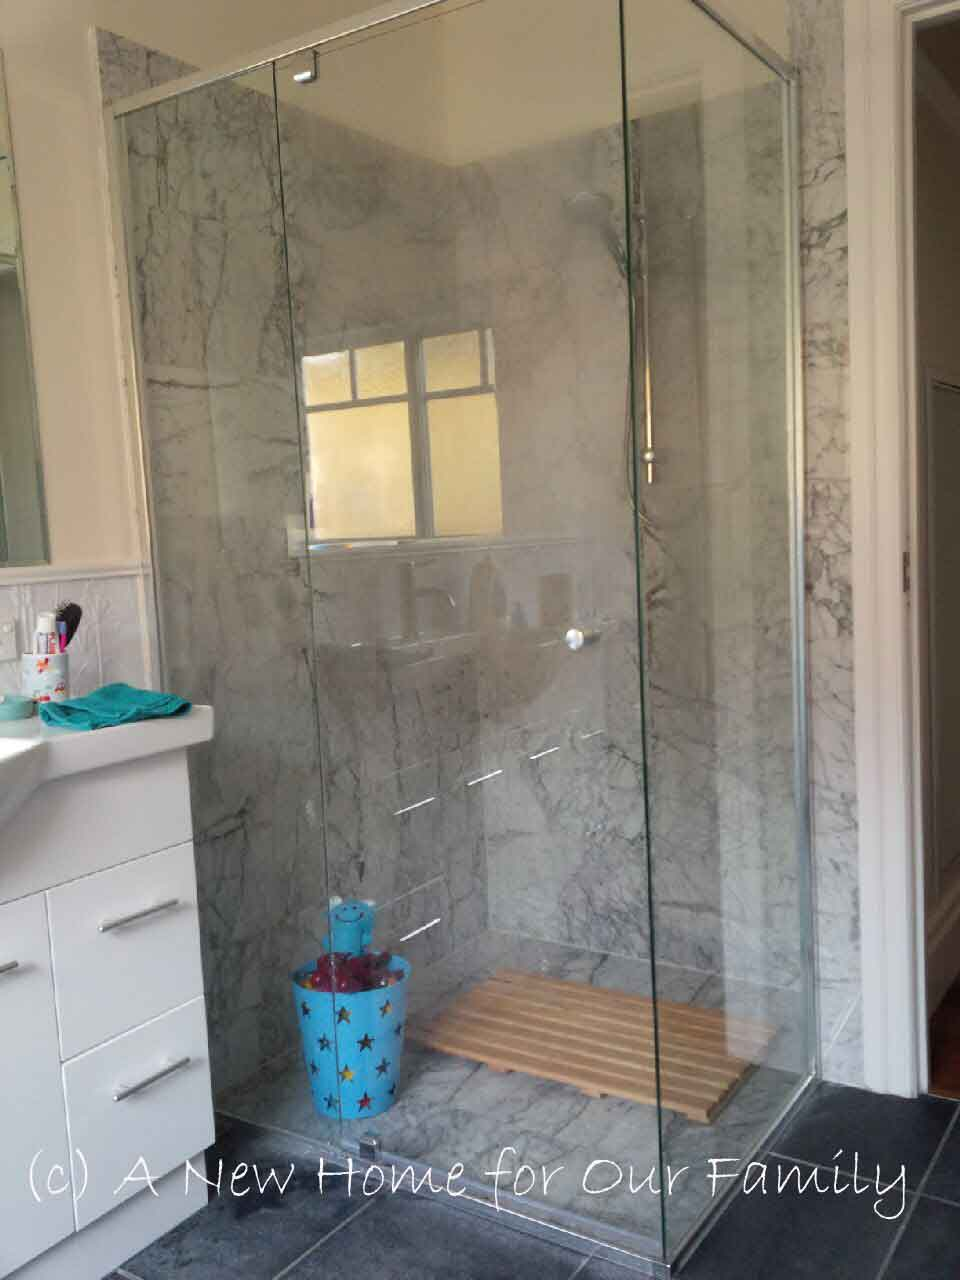 Moving In - Bathroom